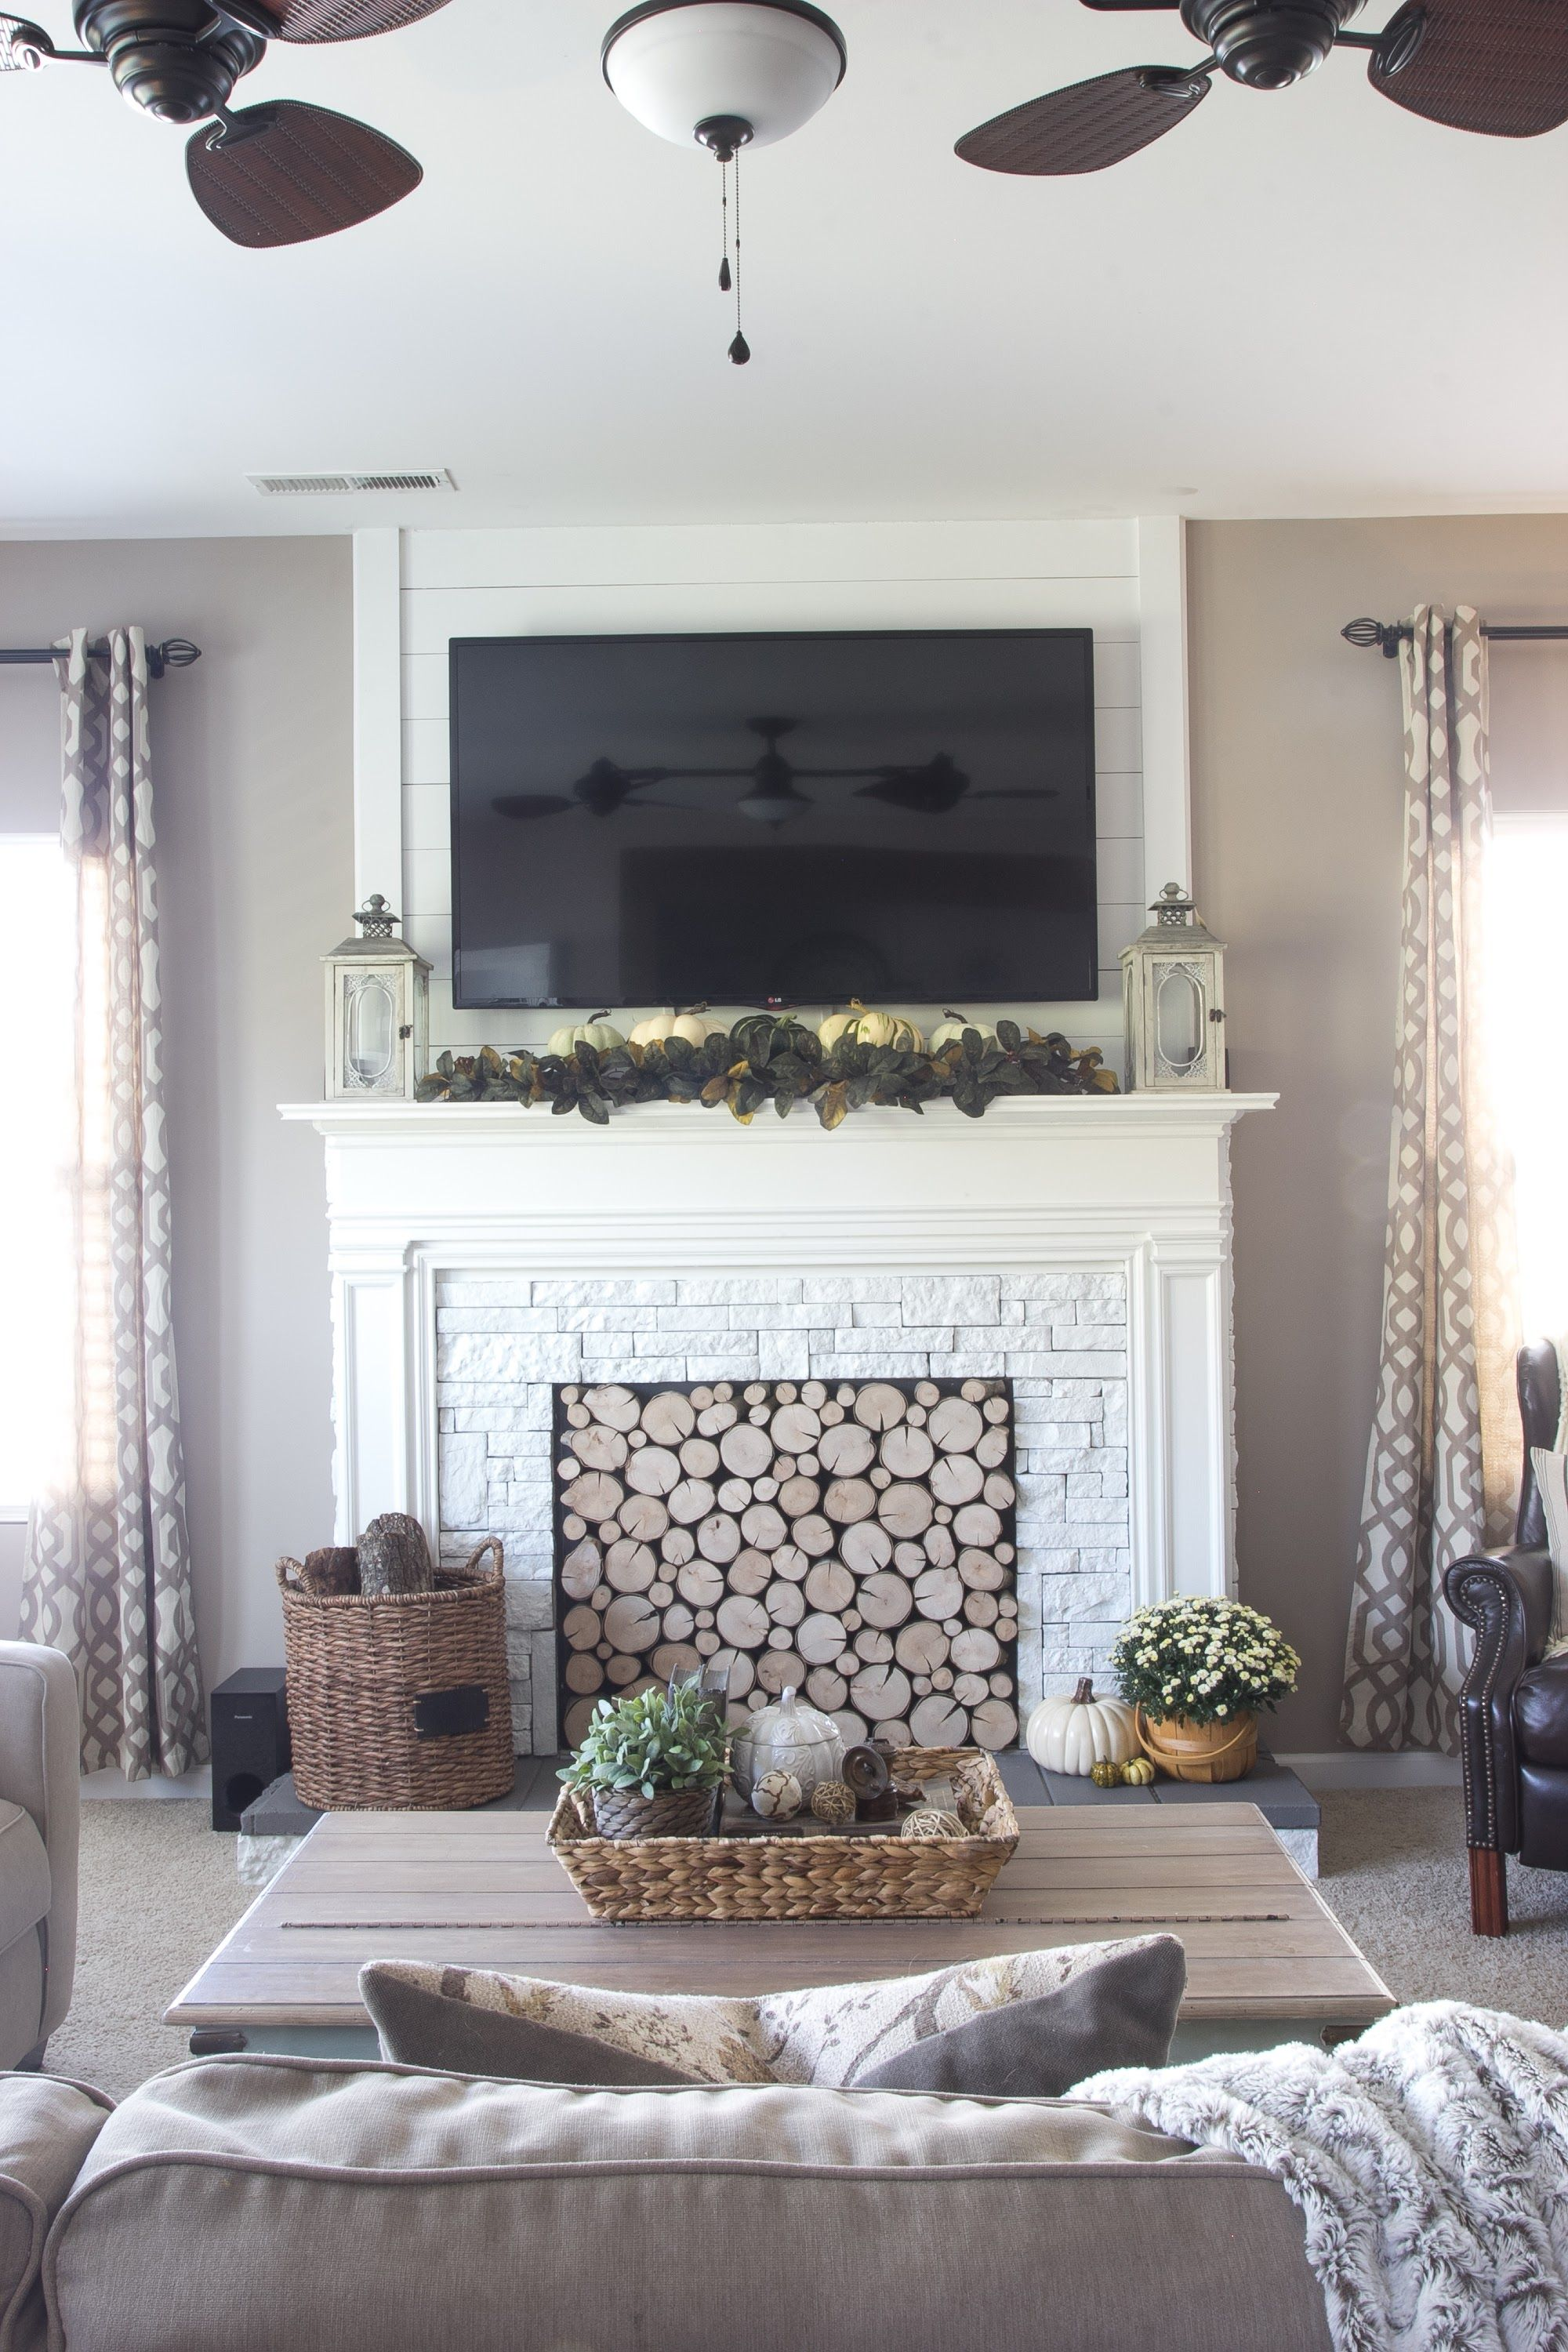 12 decorating ideas for nonworking fireplace design living room